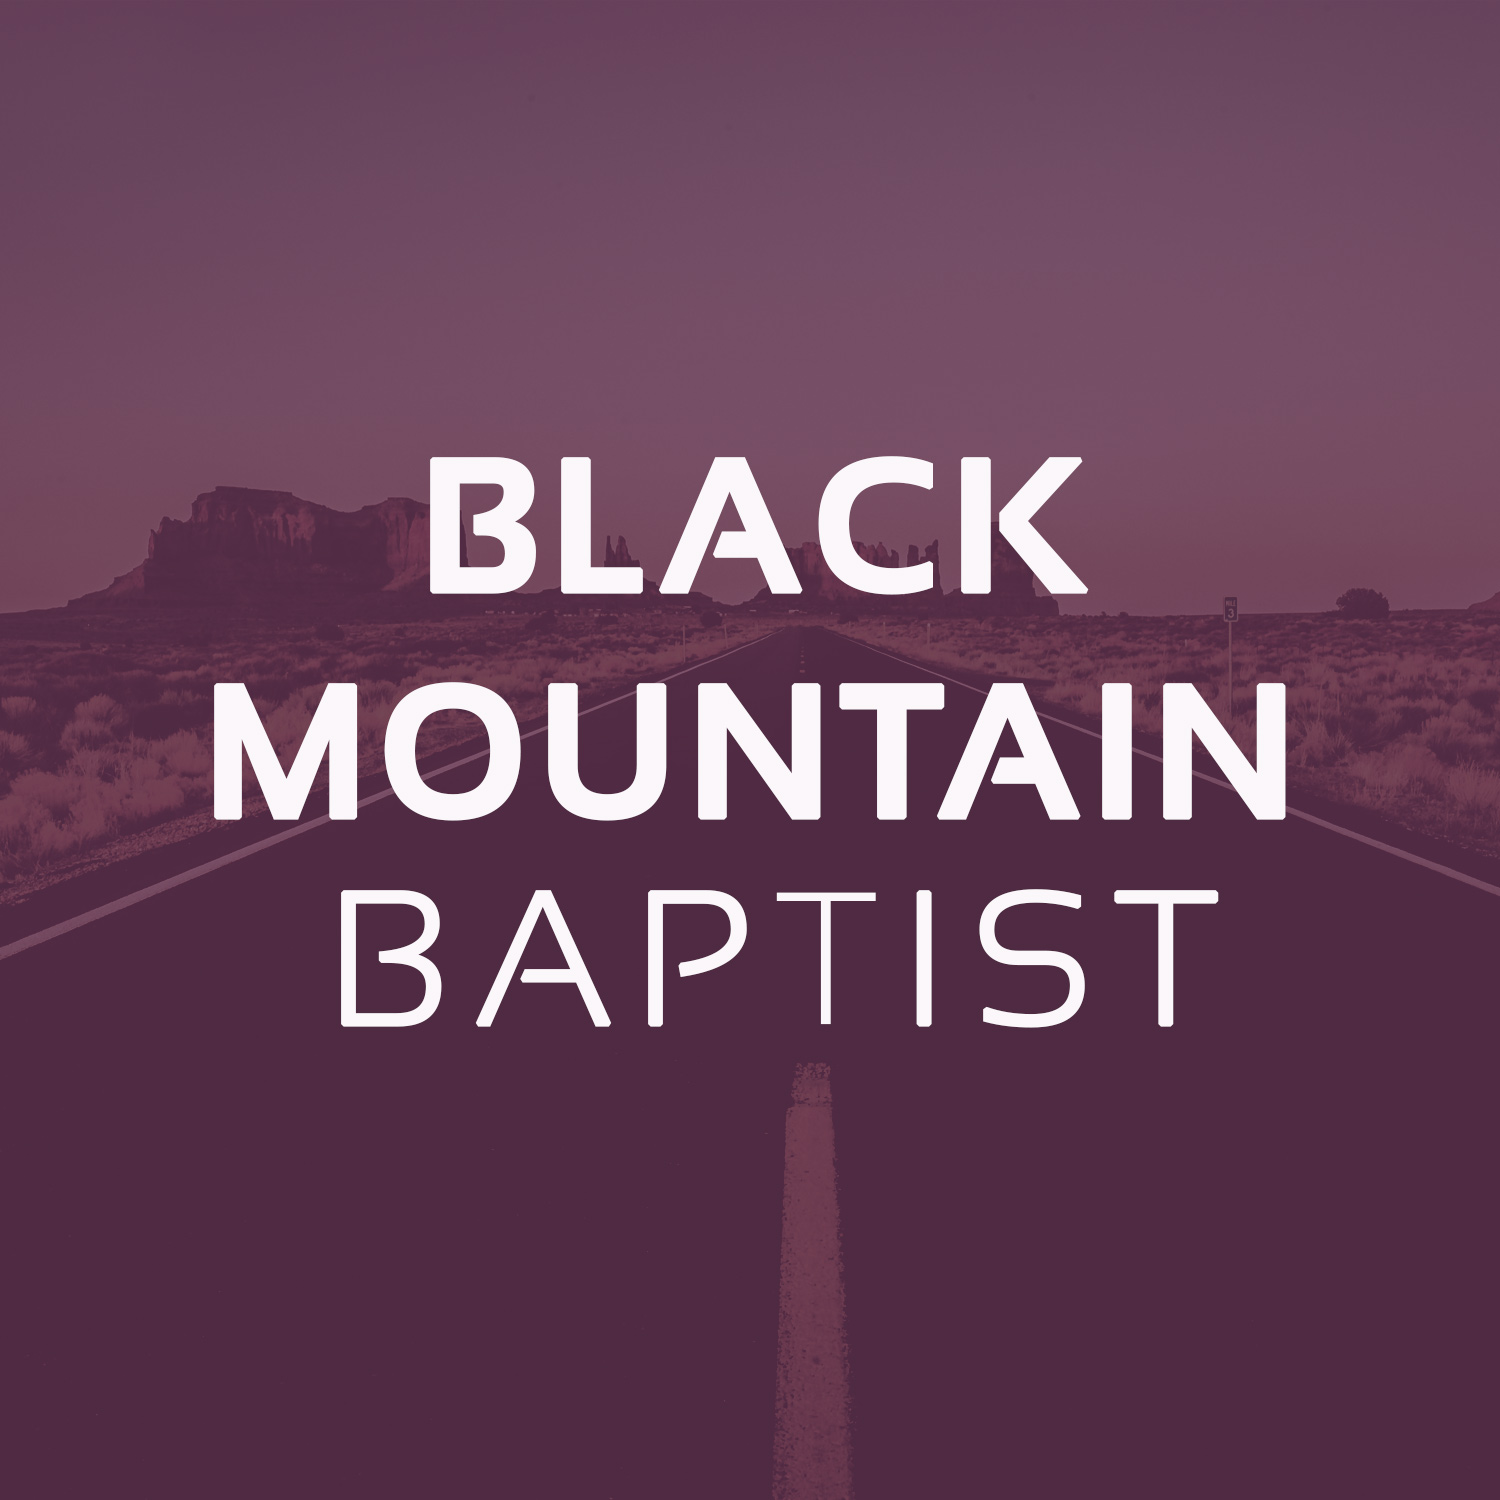 Black Mountain Baptist is a plant in Cave Creek, Arizona, a suburb northeast of Phoenix. This church is led by Senior Pastor Eric Stephens along with 4 staff members, and 7 dedicated deacons.